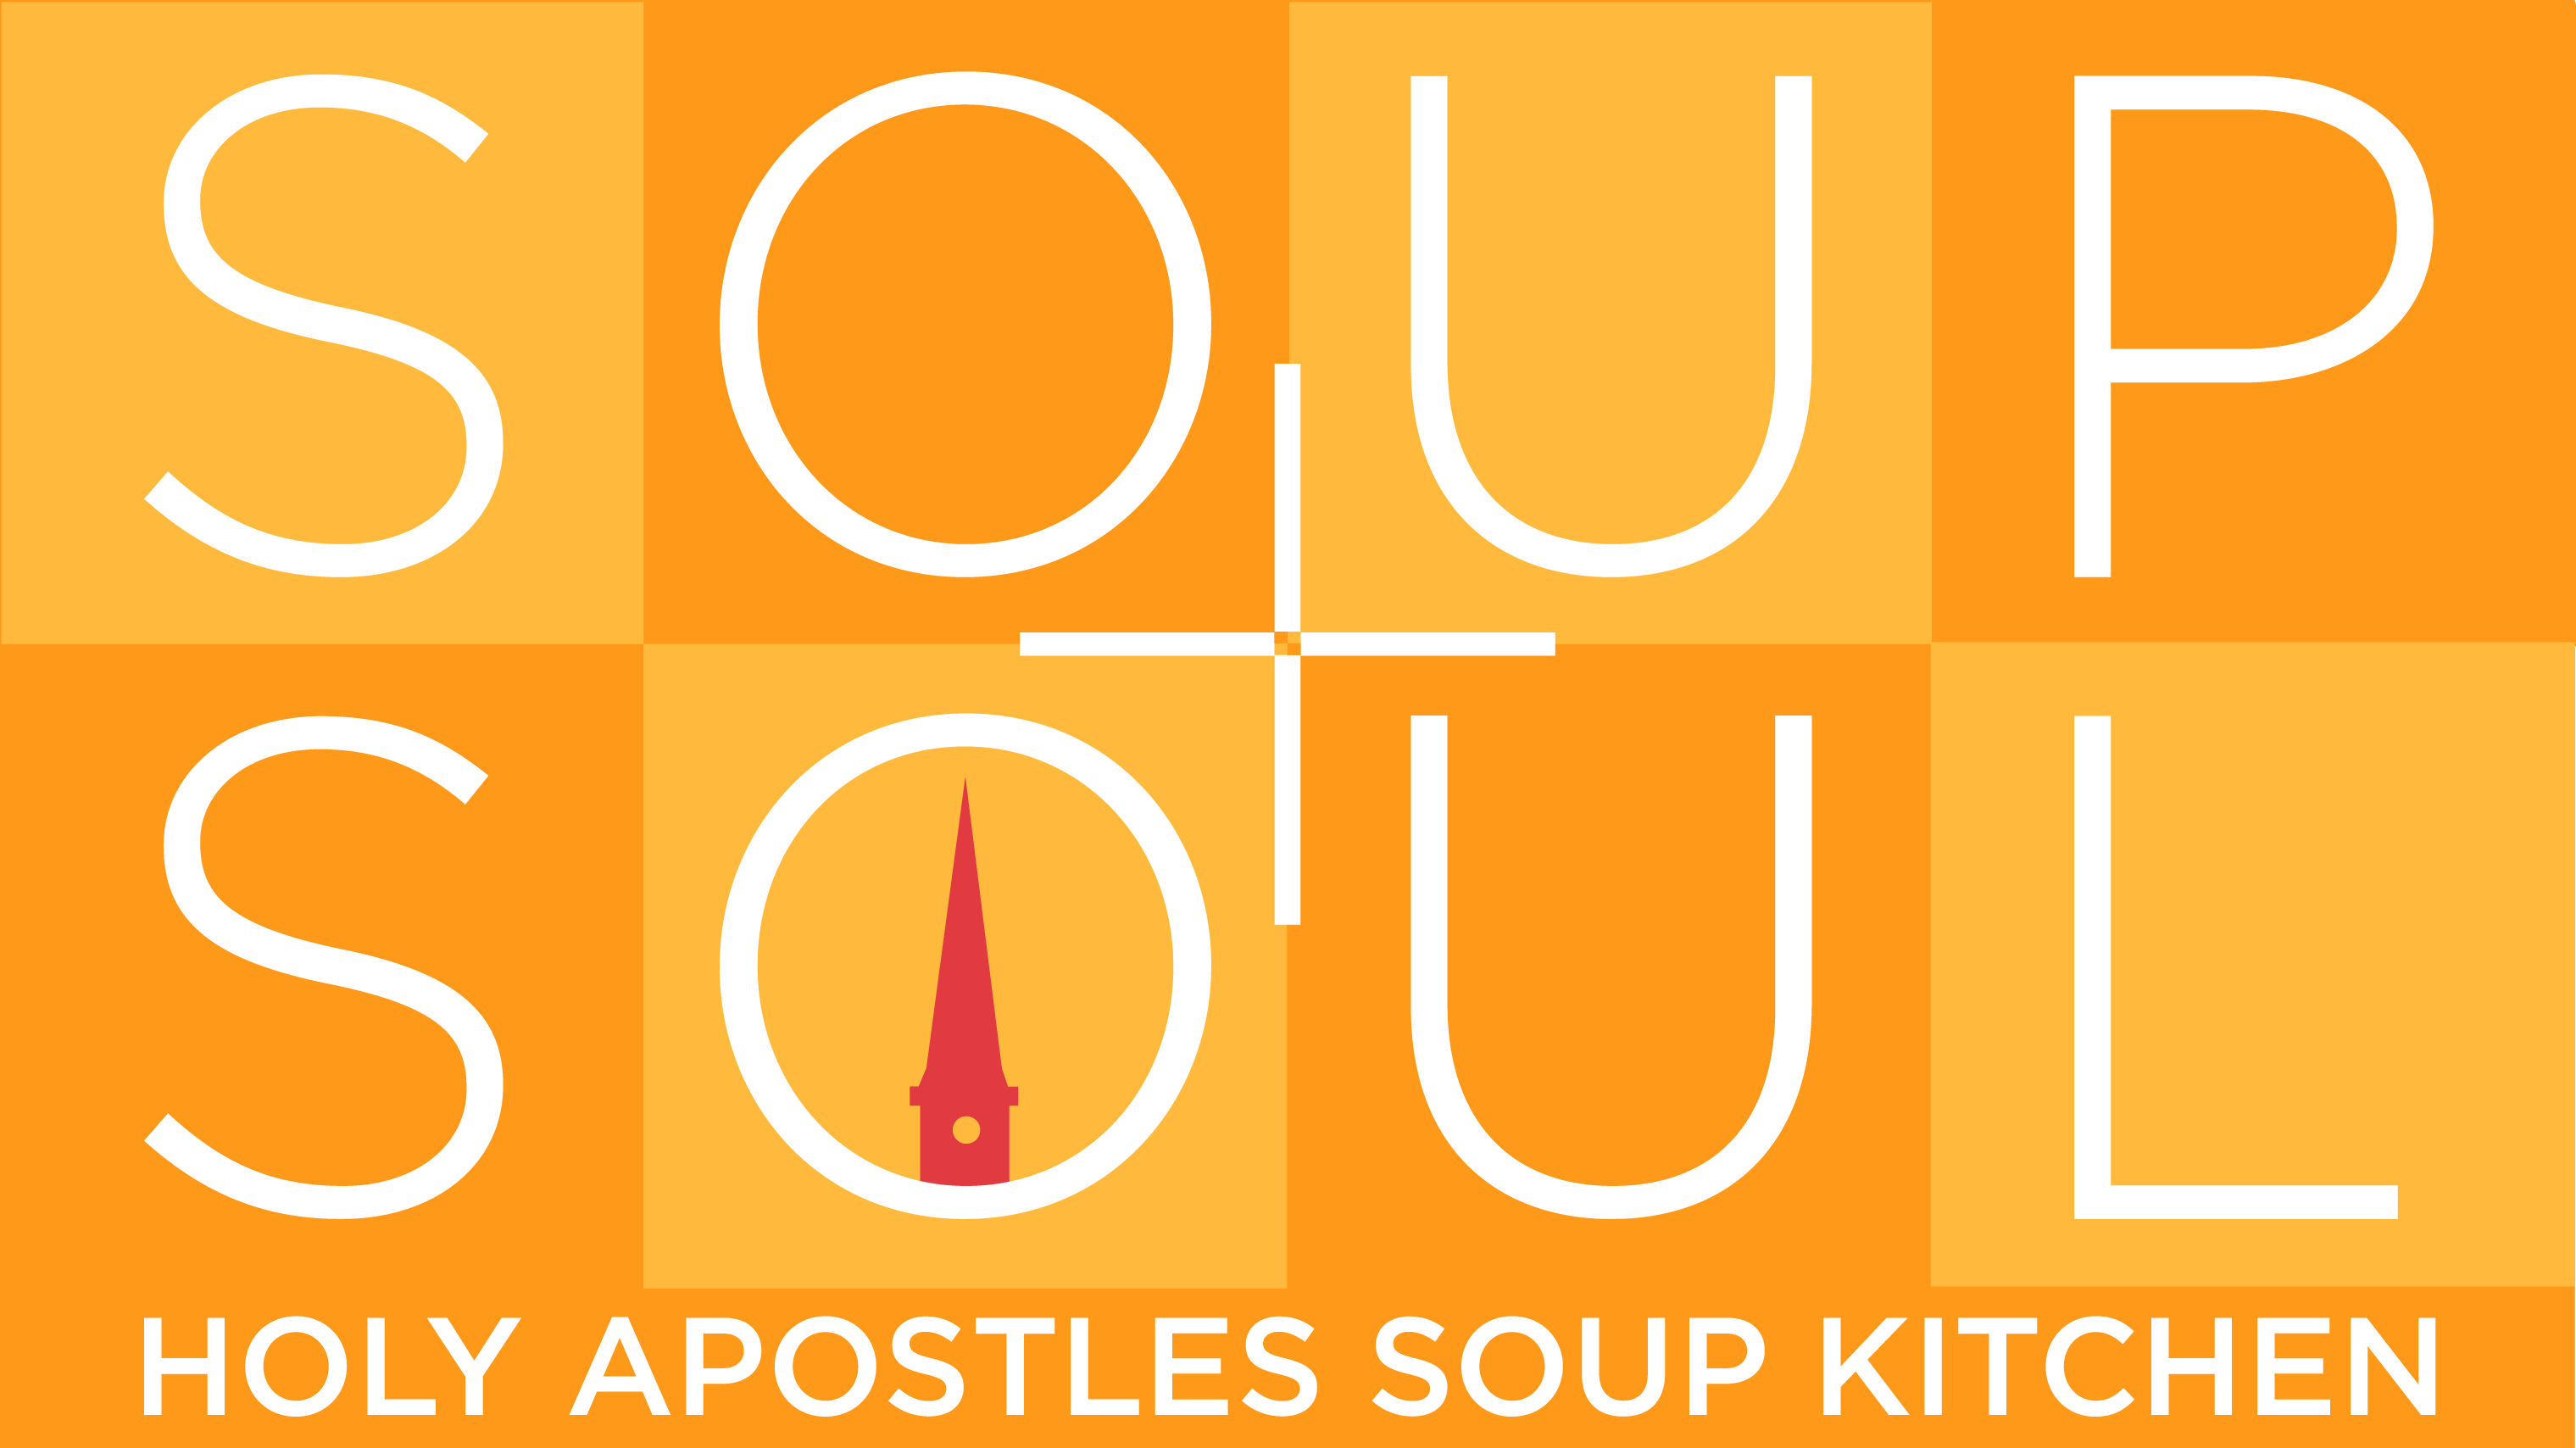 Soup Soul Holy Apostles Soup Kitchen